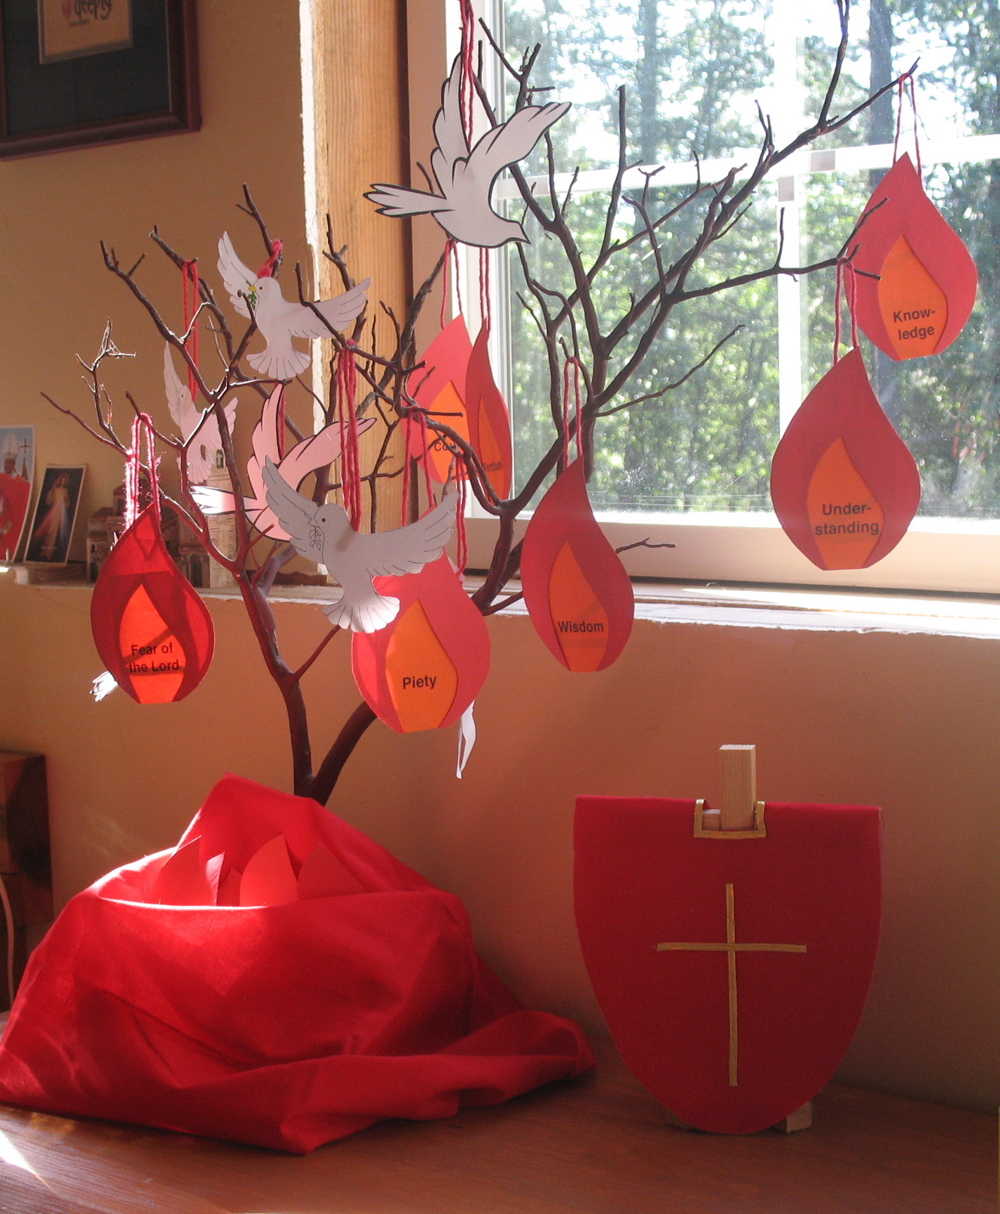 pentecost activities for youth